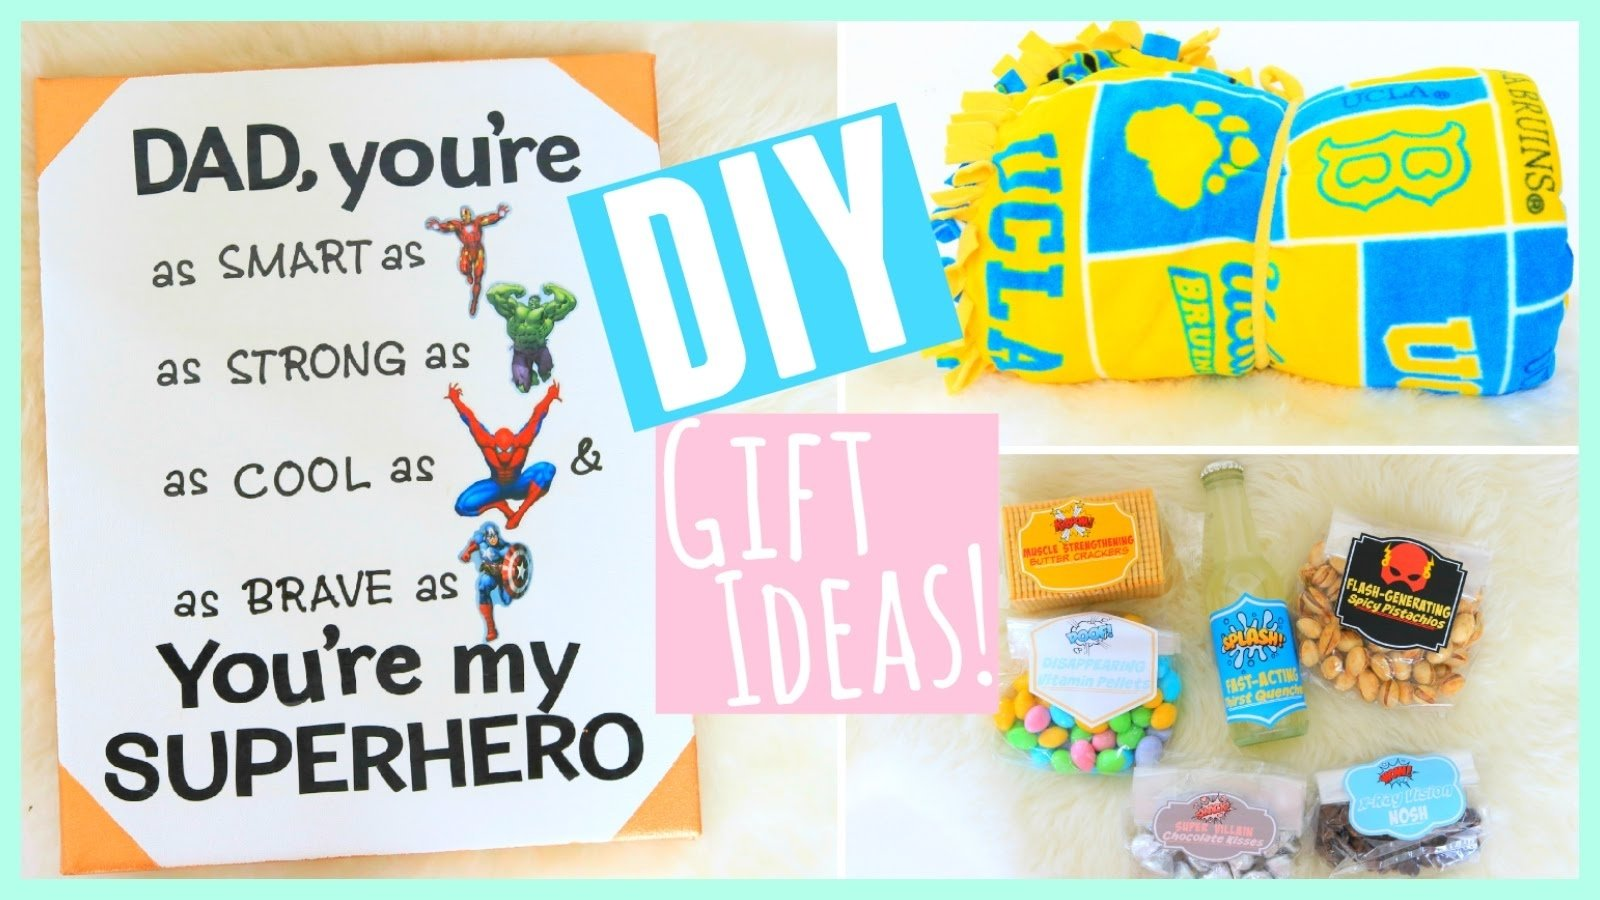 10 Lovable Diy Fathers Day Gift Ideas diy gift ideas for fathers day 2015 youtube 4 2021